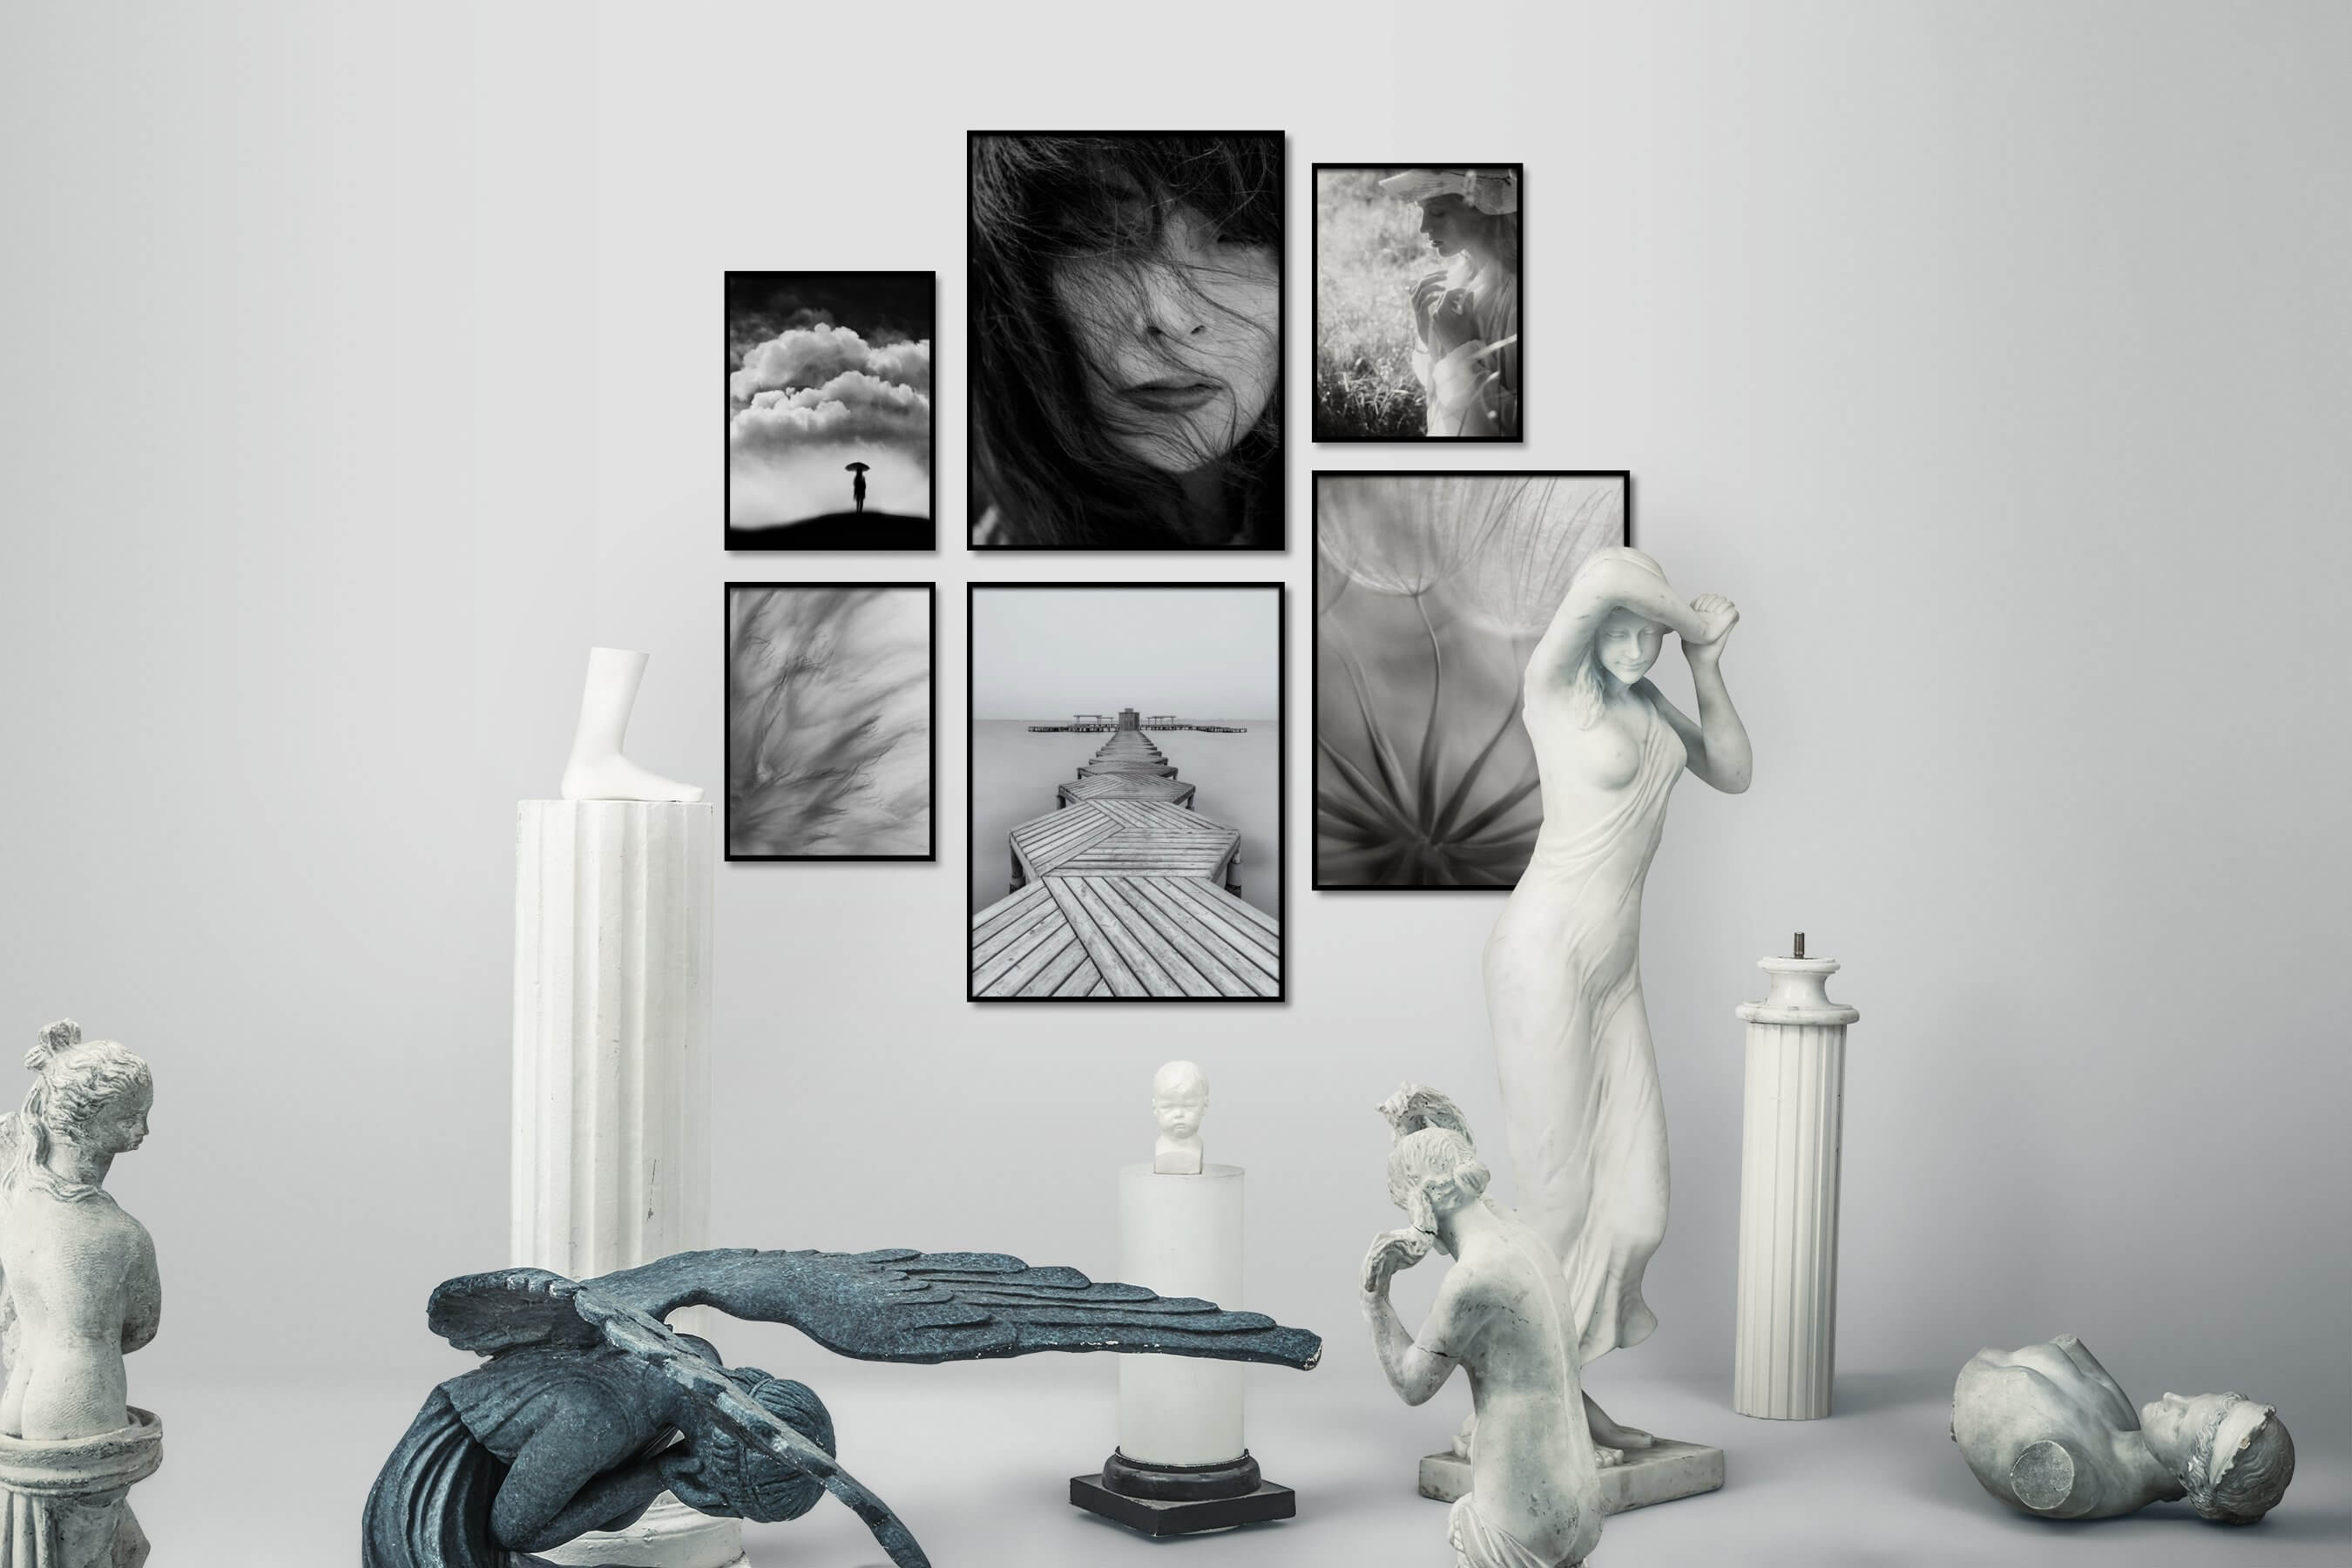 Gallery wall idea with six framed pictures arranged on a wall depicting Black & White, Country Life, Mindfulness, Fashion & Beauty, For the Moderate, Flowers & Plants, and Beach & Water